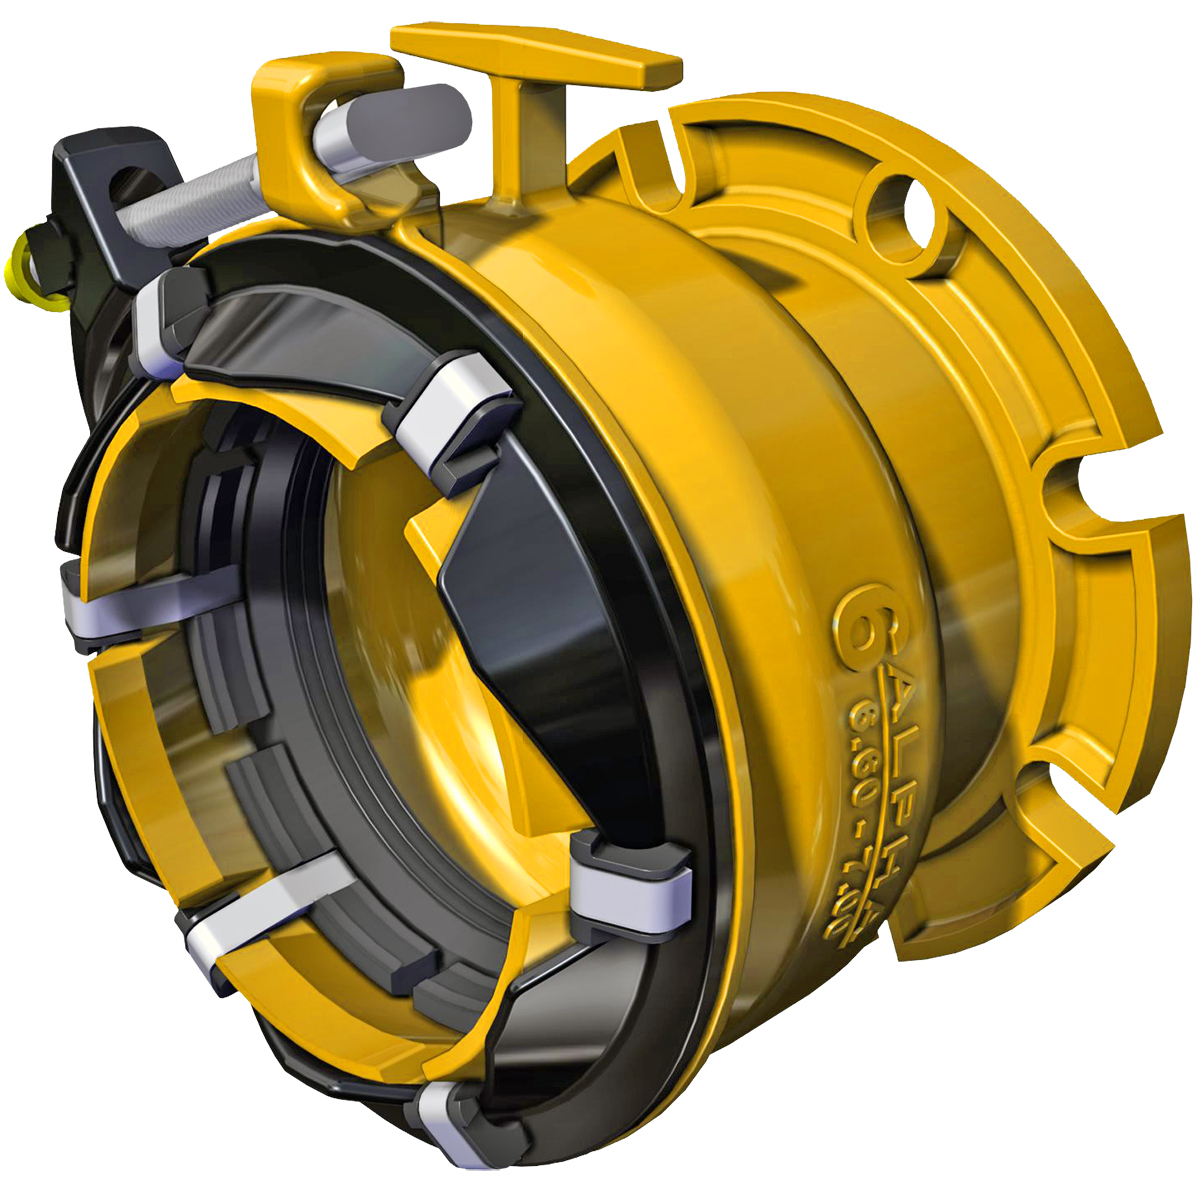 ALPHA FC - Wide range, restrained flanged coupling adapter